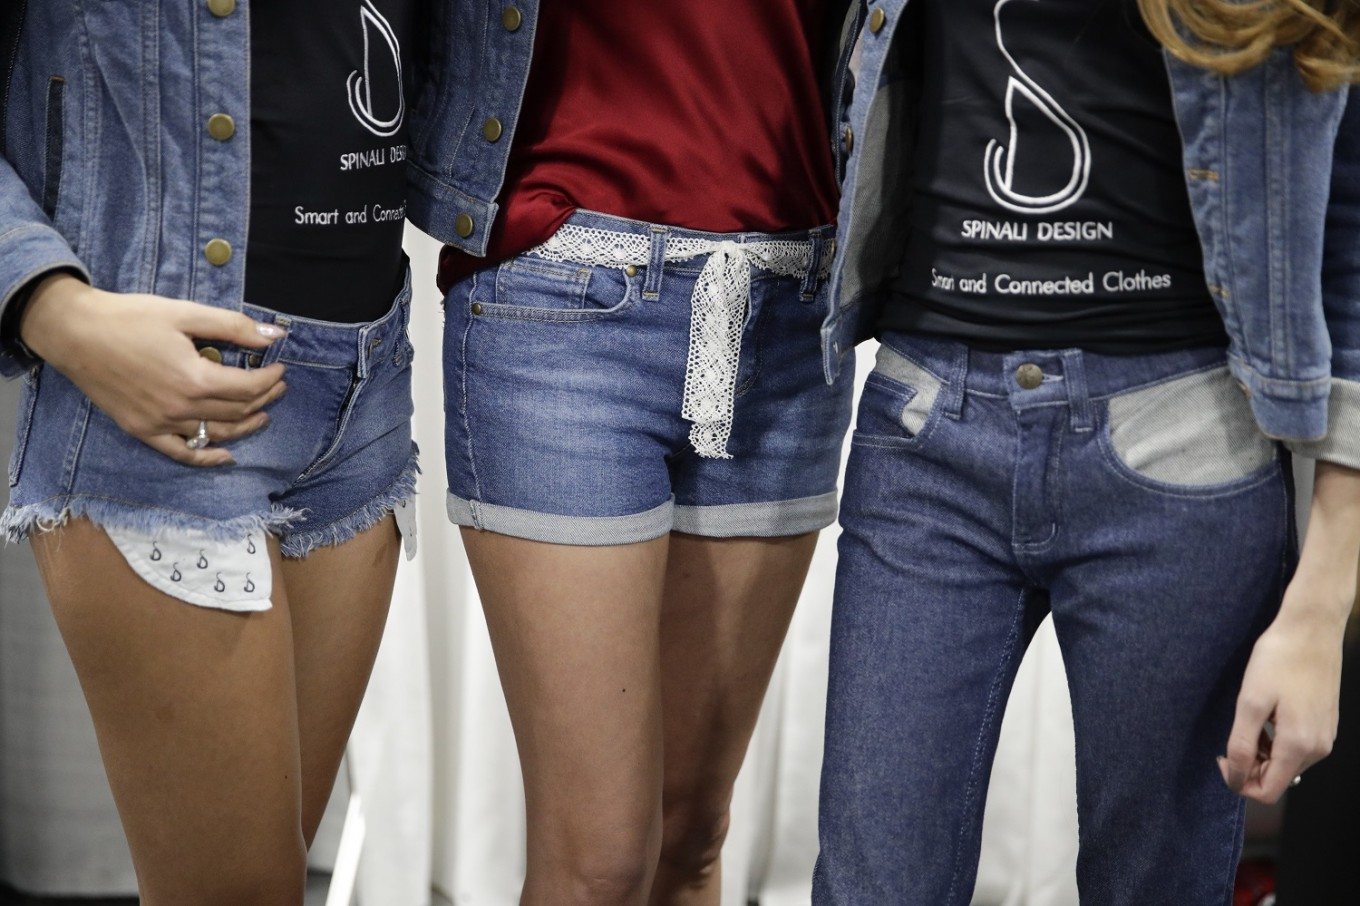 Jeans that give directions? Products get, um, 'smart' at CES